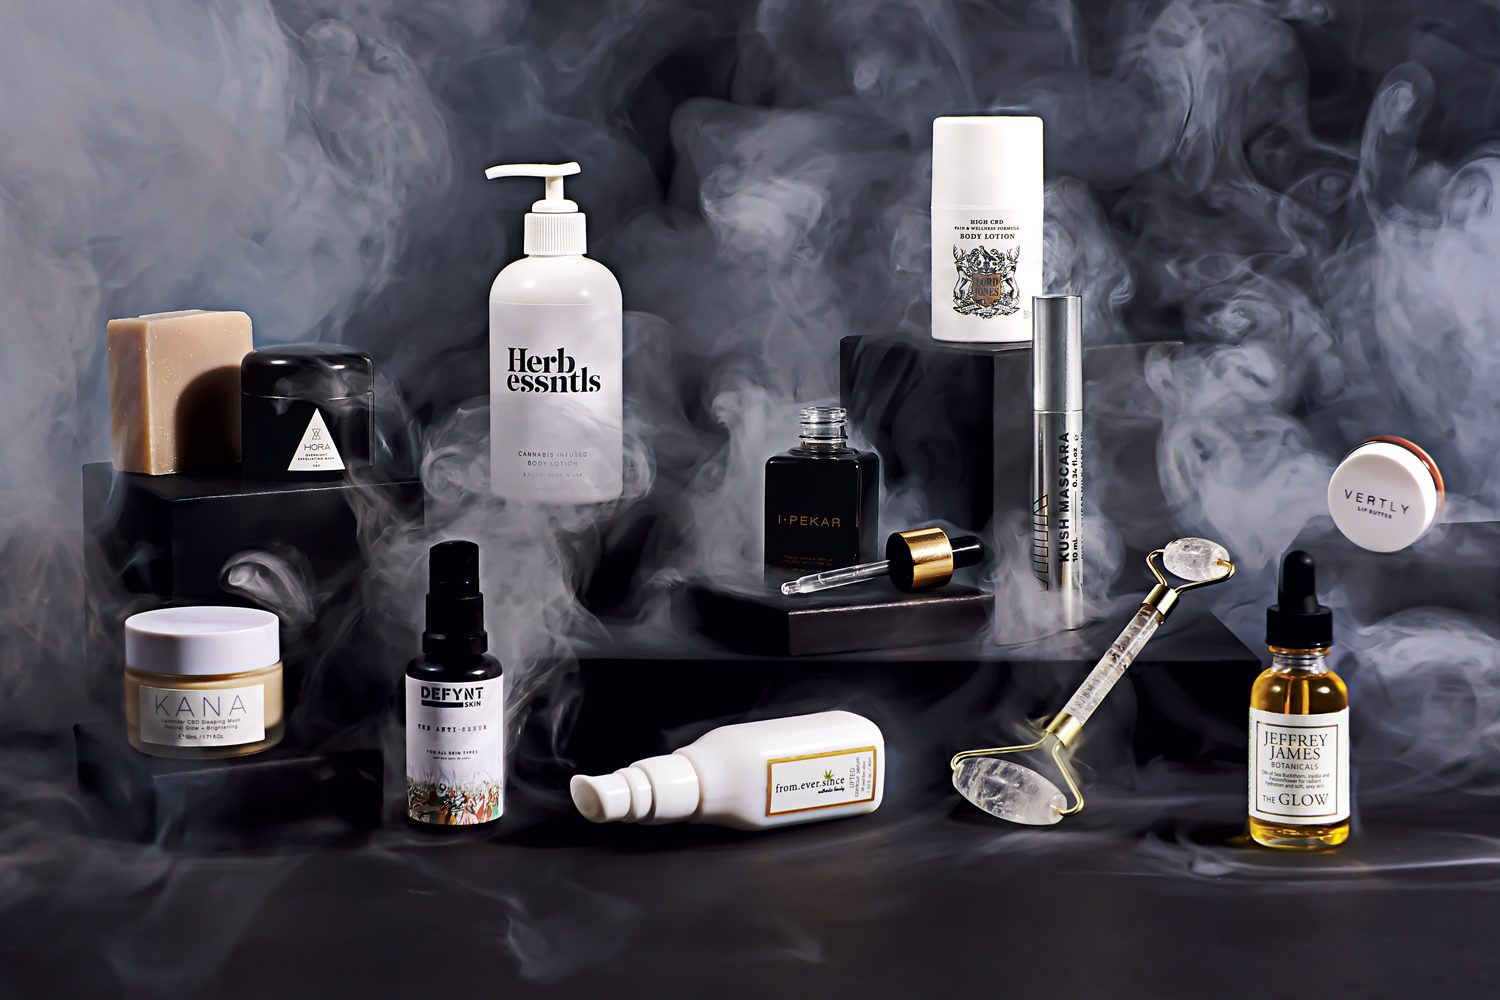 Photograph by Lauren Bulbin. most beautiful high end luxury cannabis beauty skincare products cbd hemp oil cannabis oil